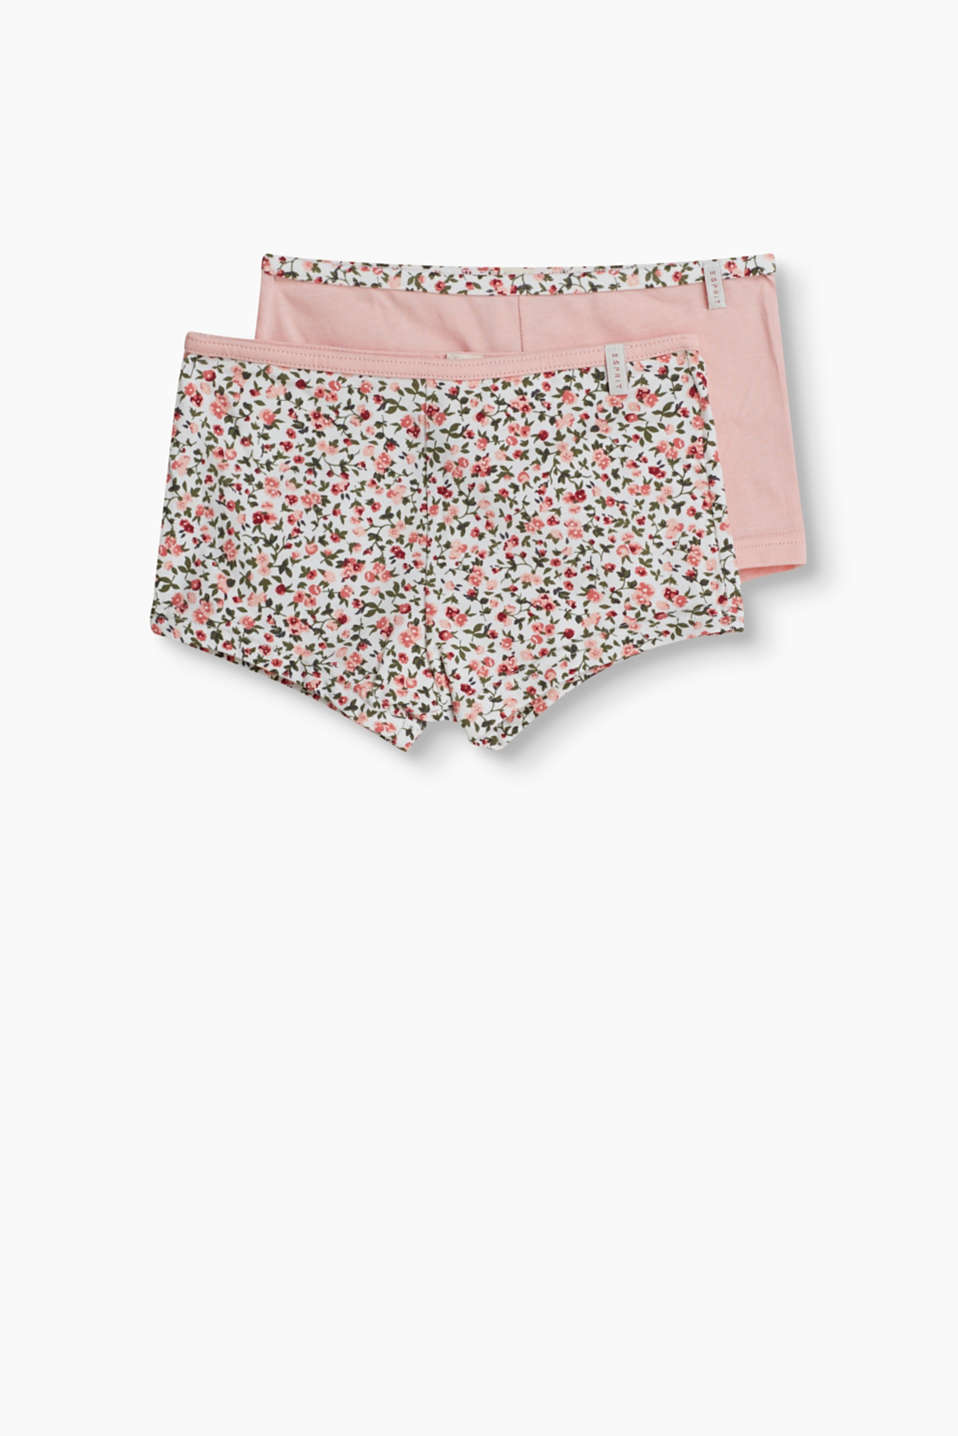 A pretty look, soft and comfortable: hot pants in a practical double pack (plain and with a floral print)